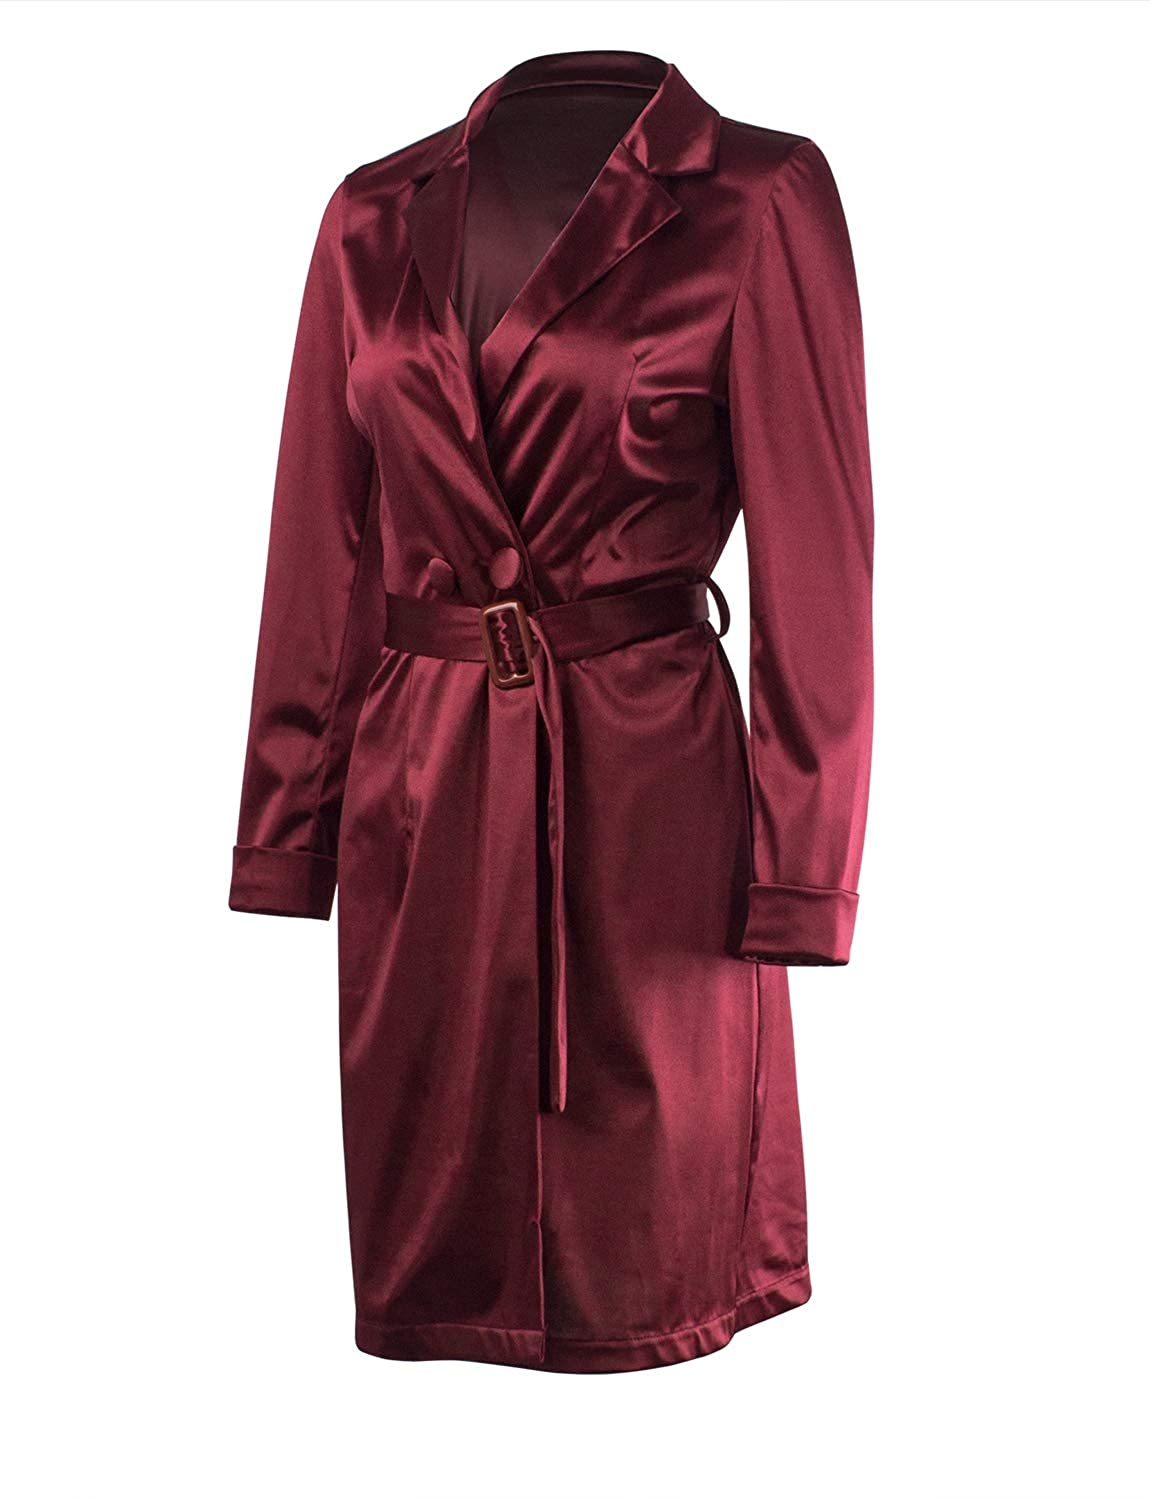 679cfc3027f Women Sexy Satin Long Sleeve Deep V Neck Bodycon Evening Club Pajamas Dress  at Amazon Women s Clothing store